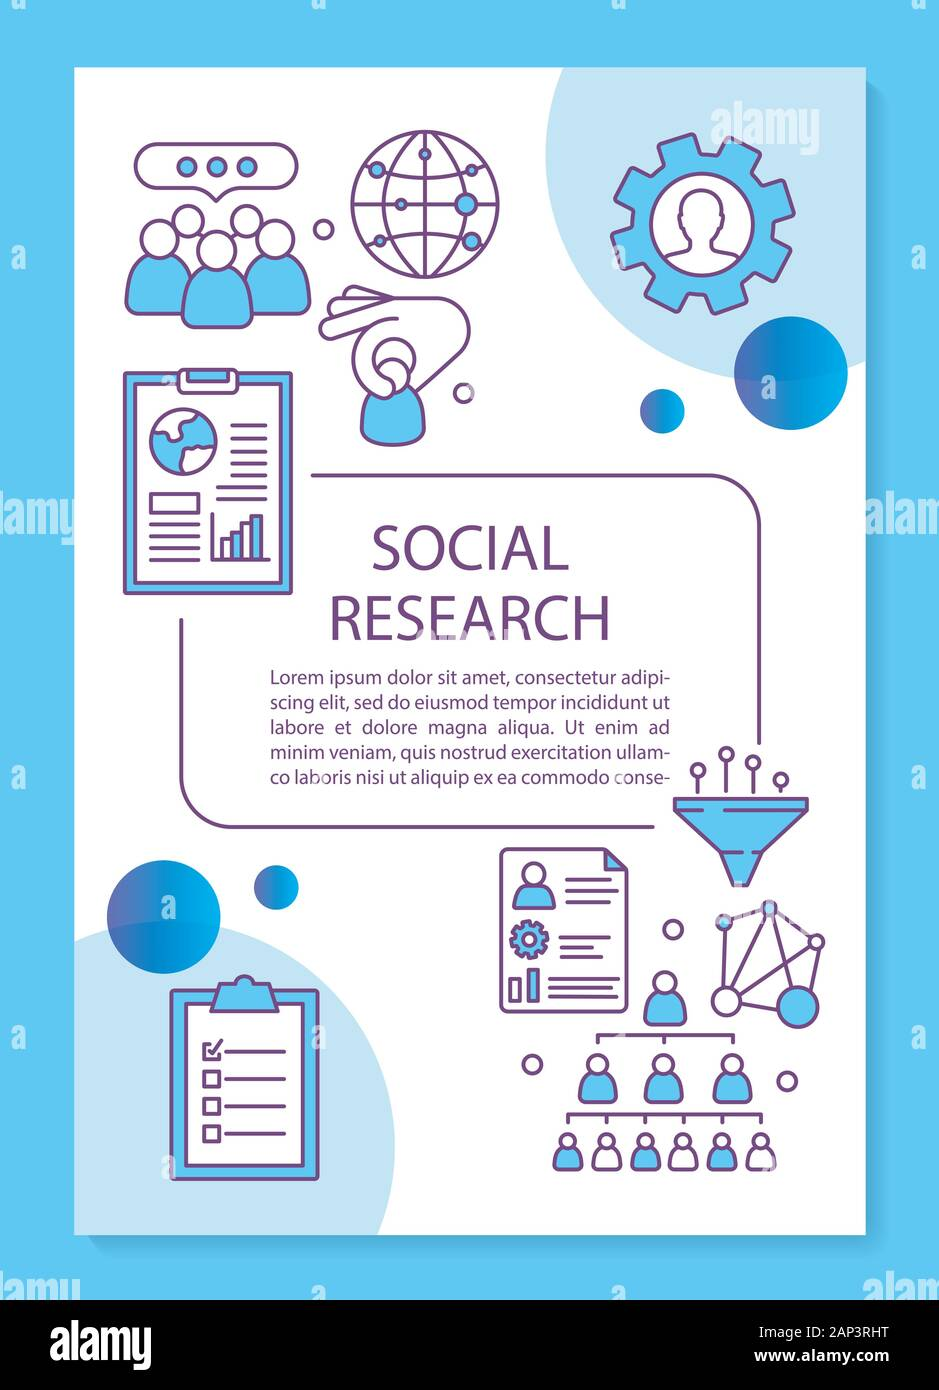 https www alamy com social research poster template layout social sciences interpersonal relations banner booklet leaflet print design with linear icons vector broc image340603812 html